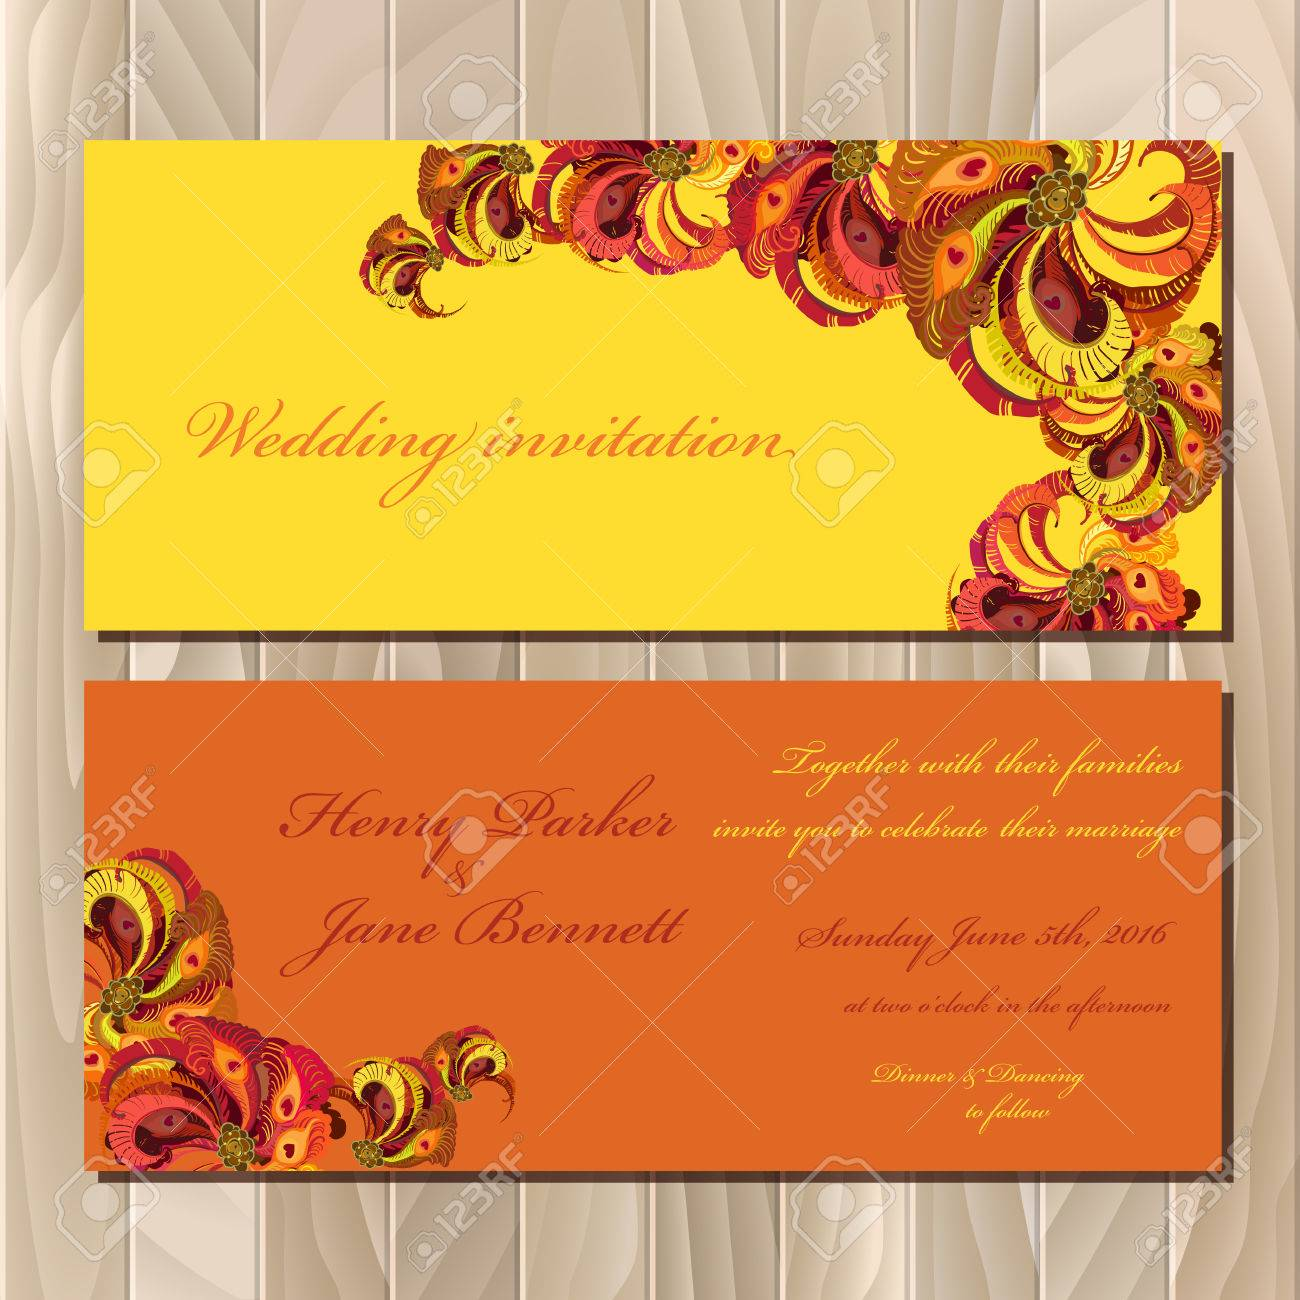 Wedding Invitation Card With Peacock Feathers Printable 1300x1300